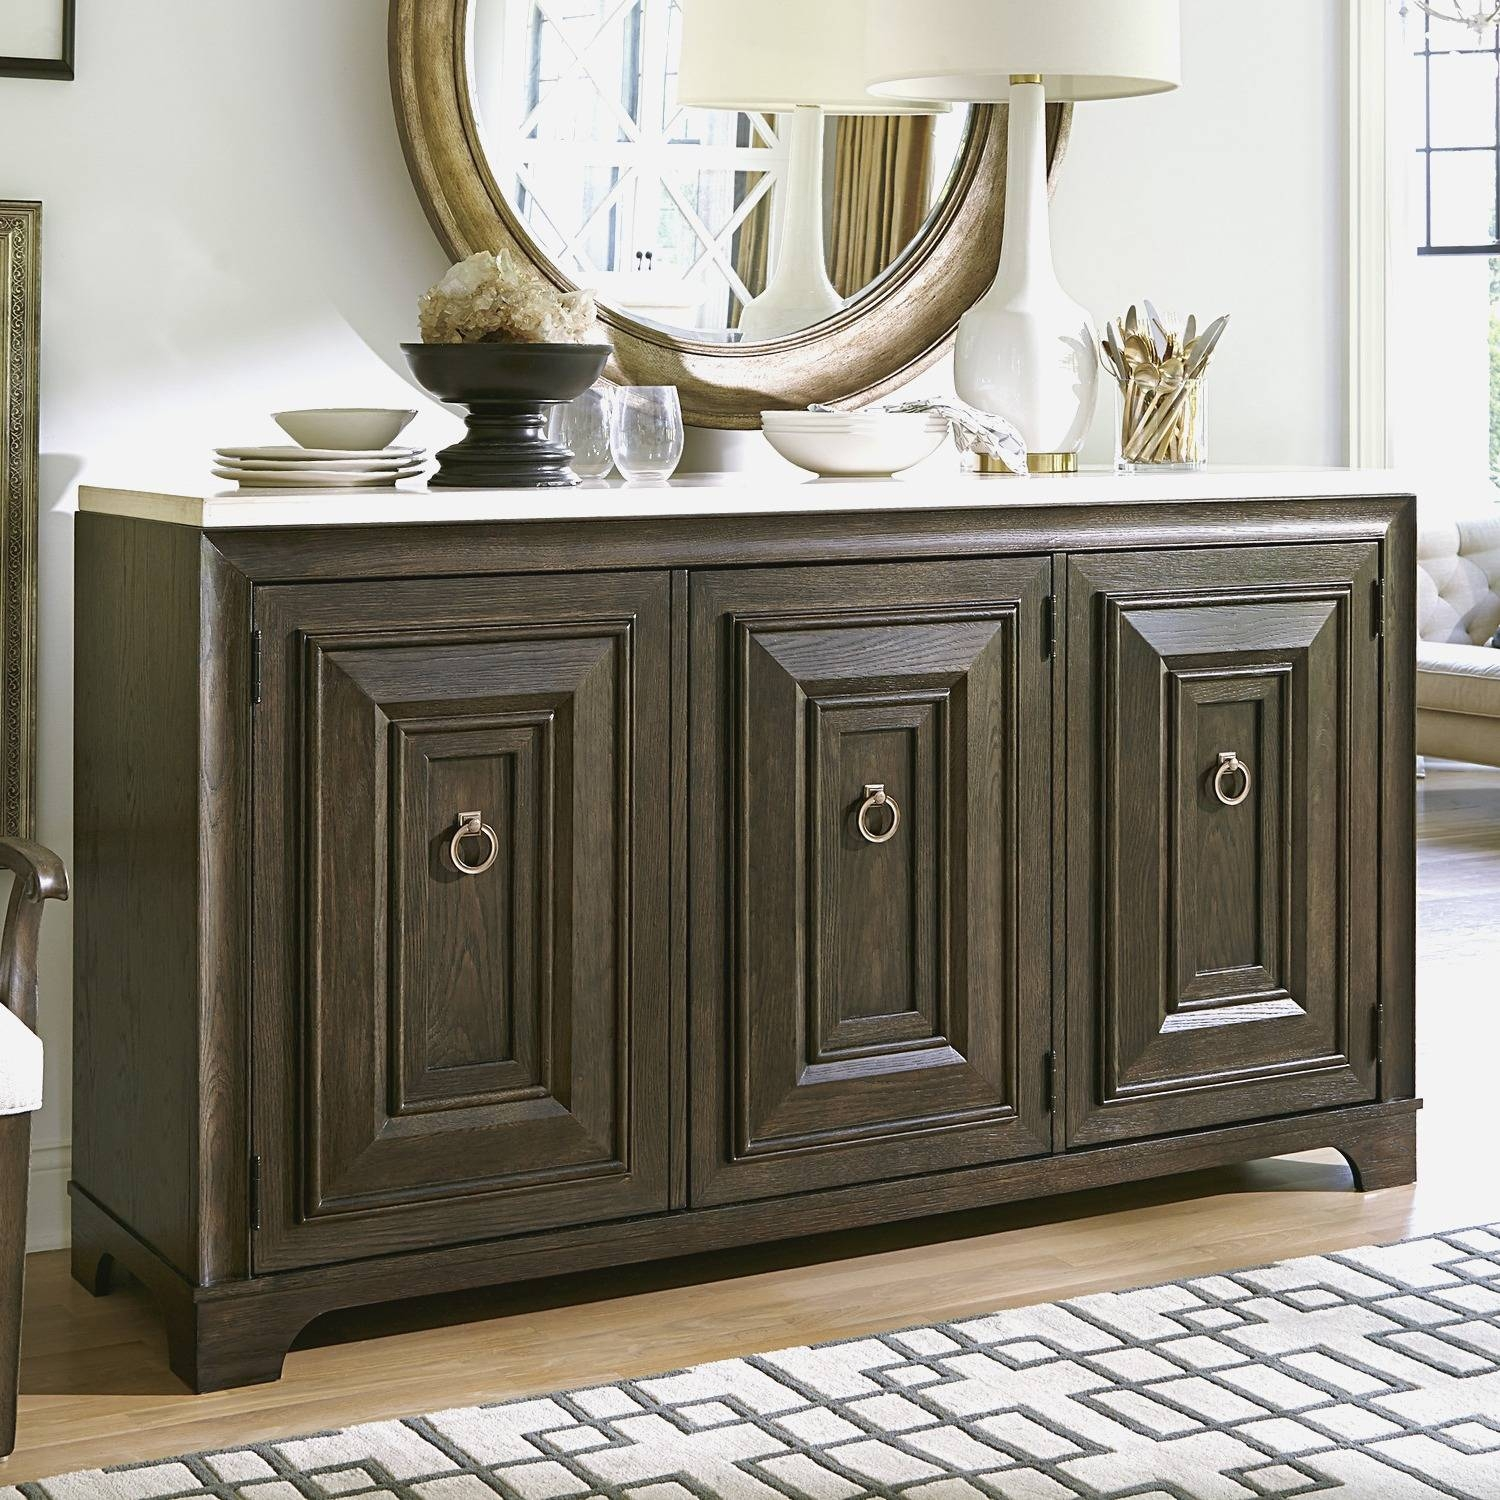 Cabinet : Large Buffets And Sideboards Wonderful Sideboards And intended for Mirror Over Sideboards (Image 4 of 15)